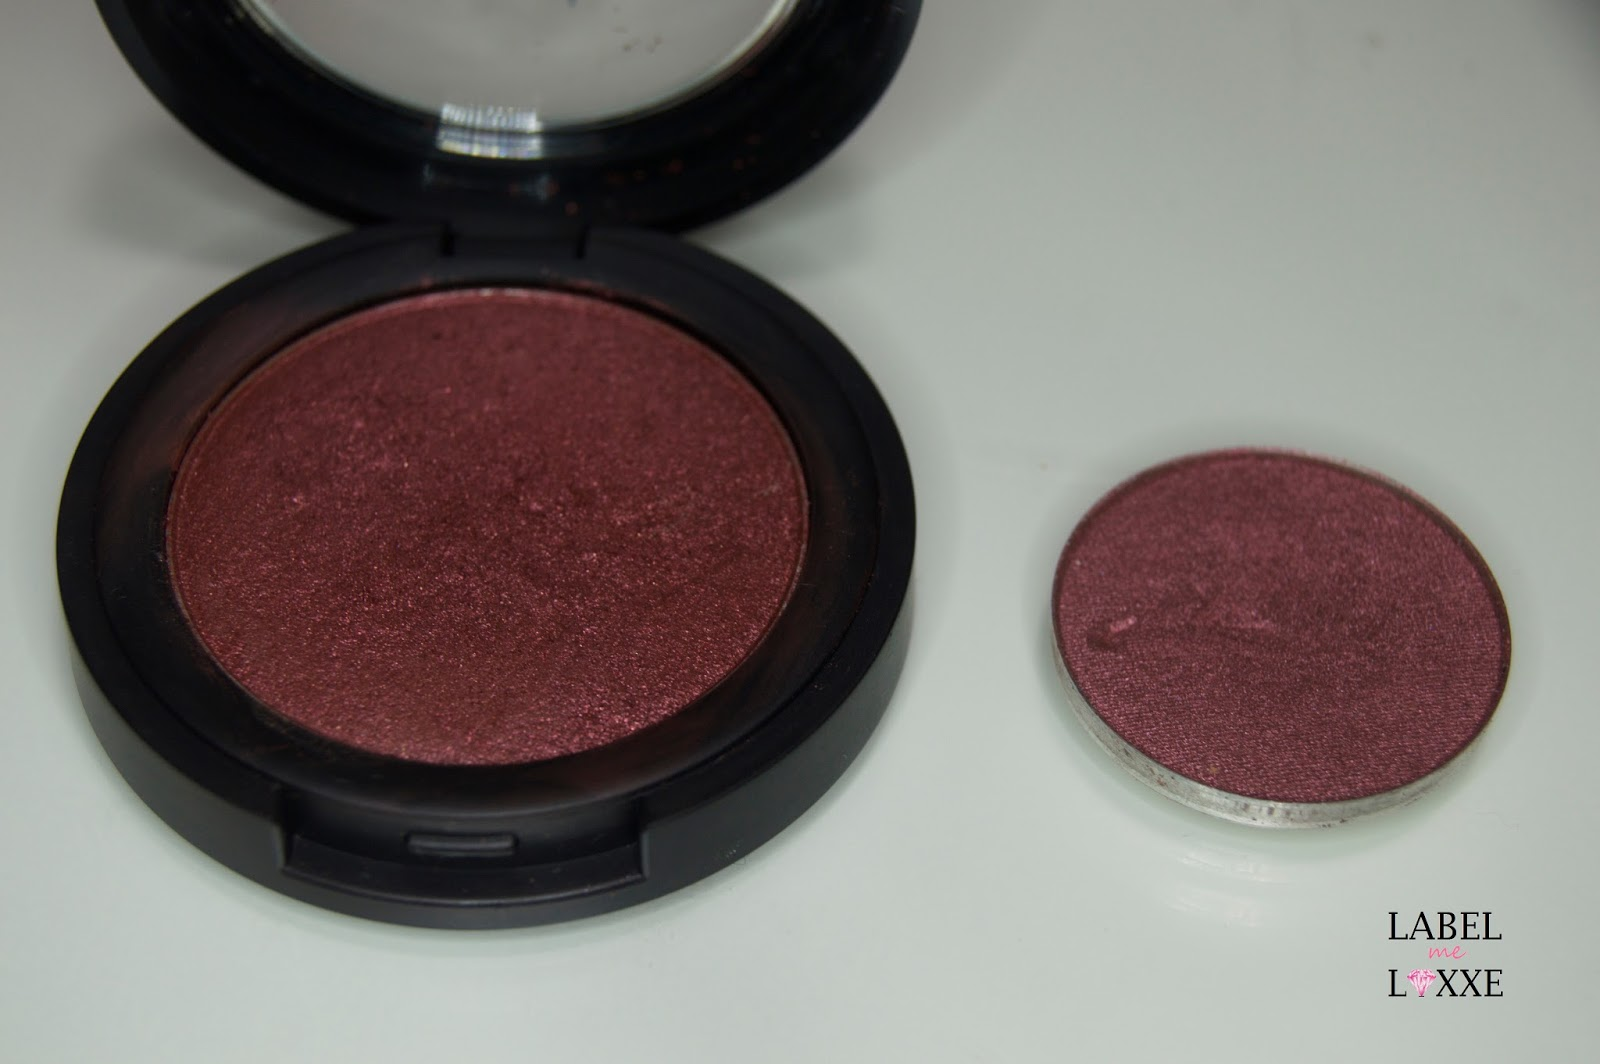 Kat Von D Metal Crush Collection eyeshadow vs. Anastsia Beverly Hills eyeshadow